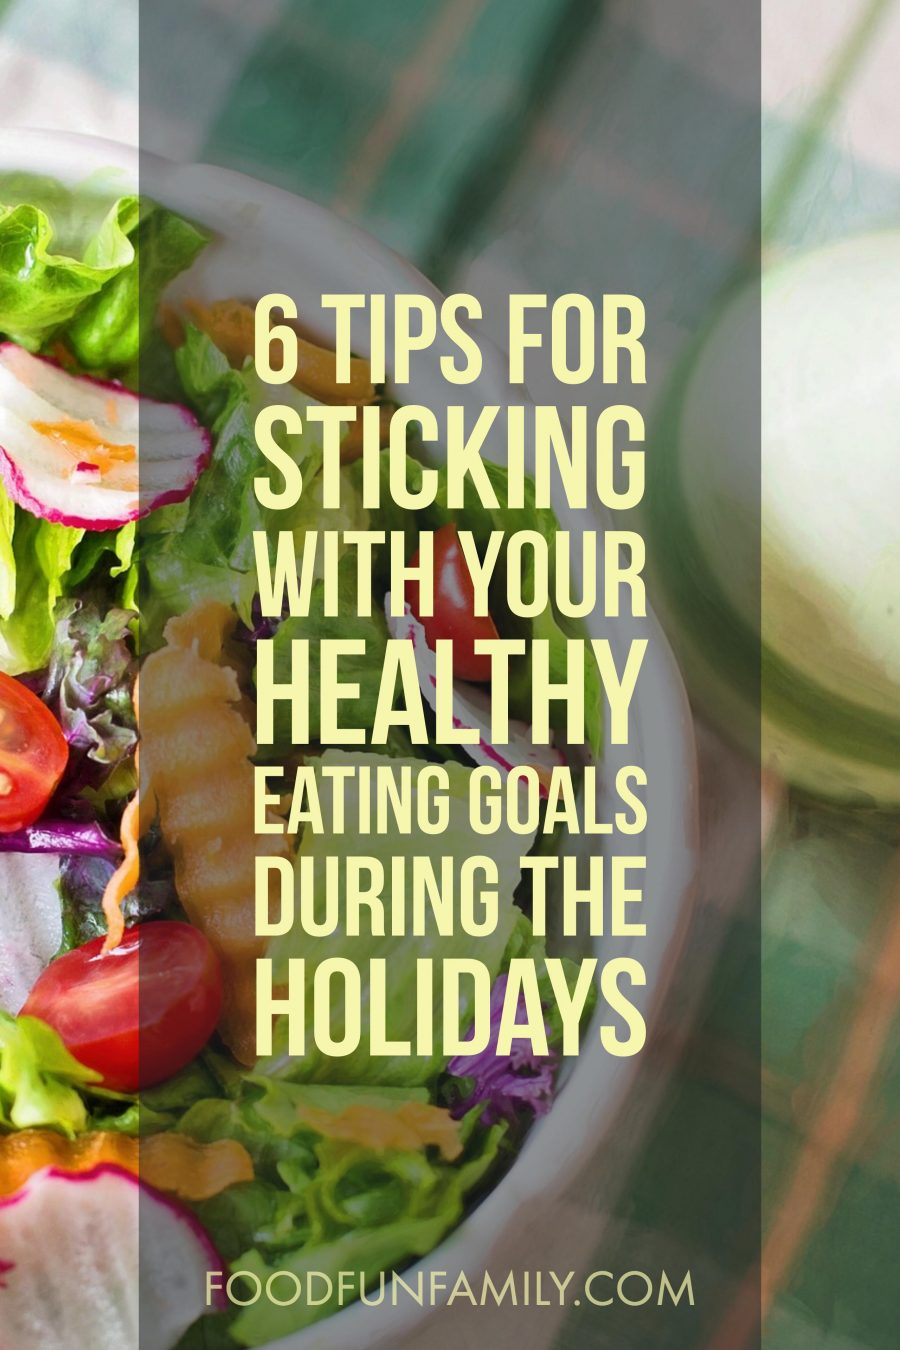 6 Tips for Sticking with Your Healthy Eating Goals During the Holidays